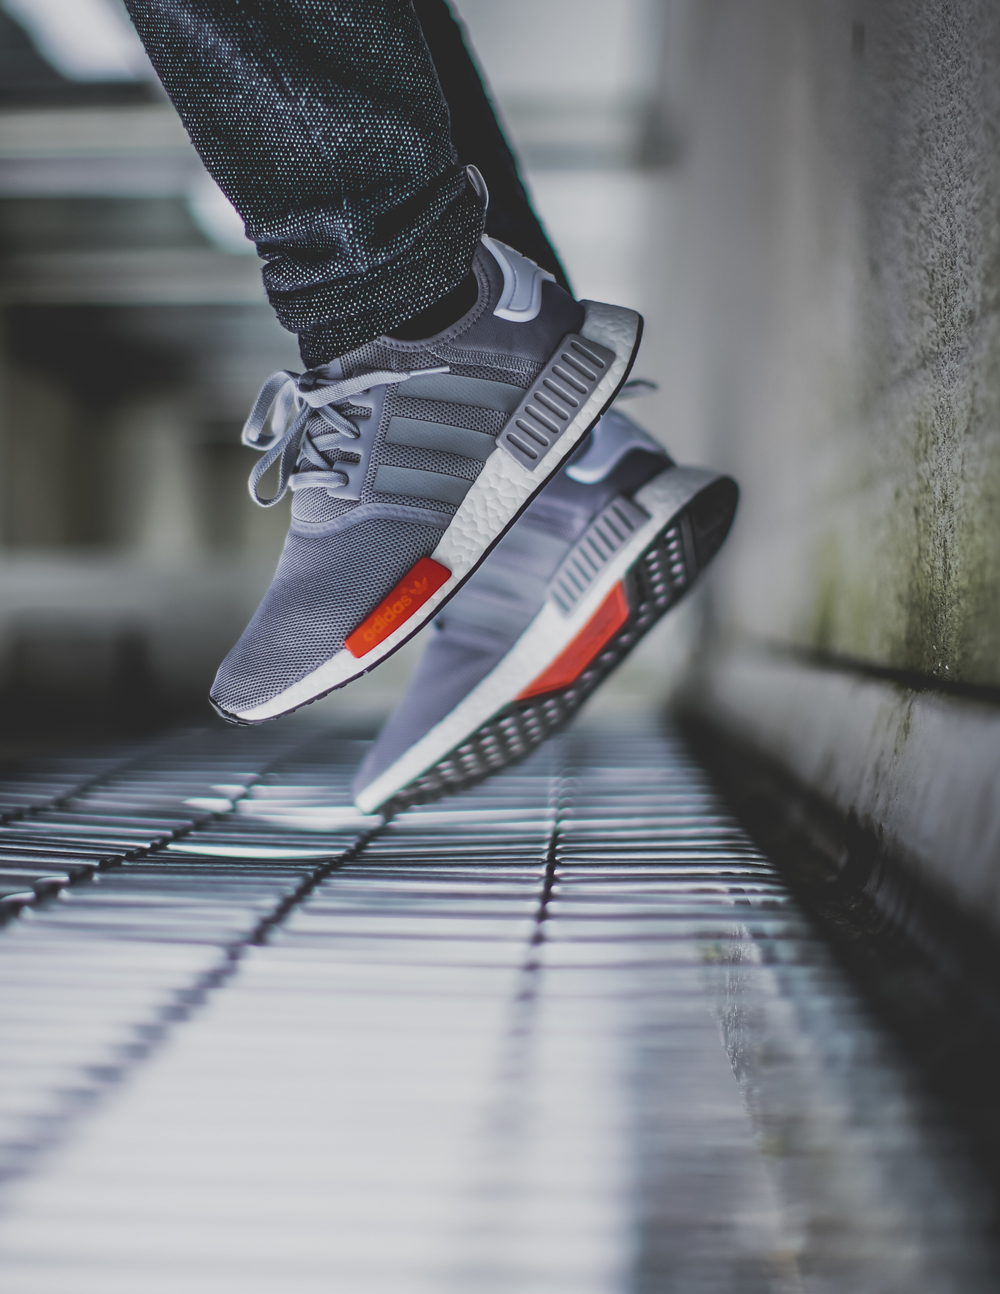 Adidas NMD Firestarter Limited To 300 Pairs